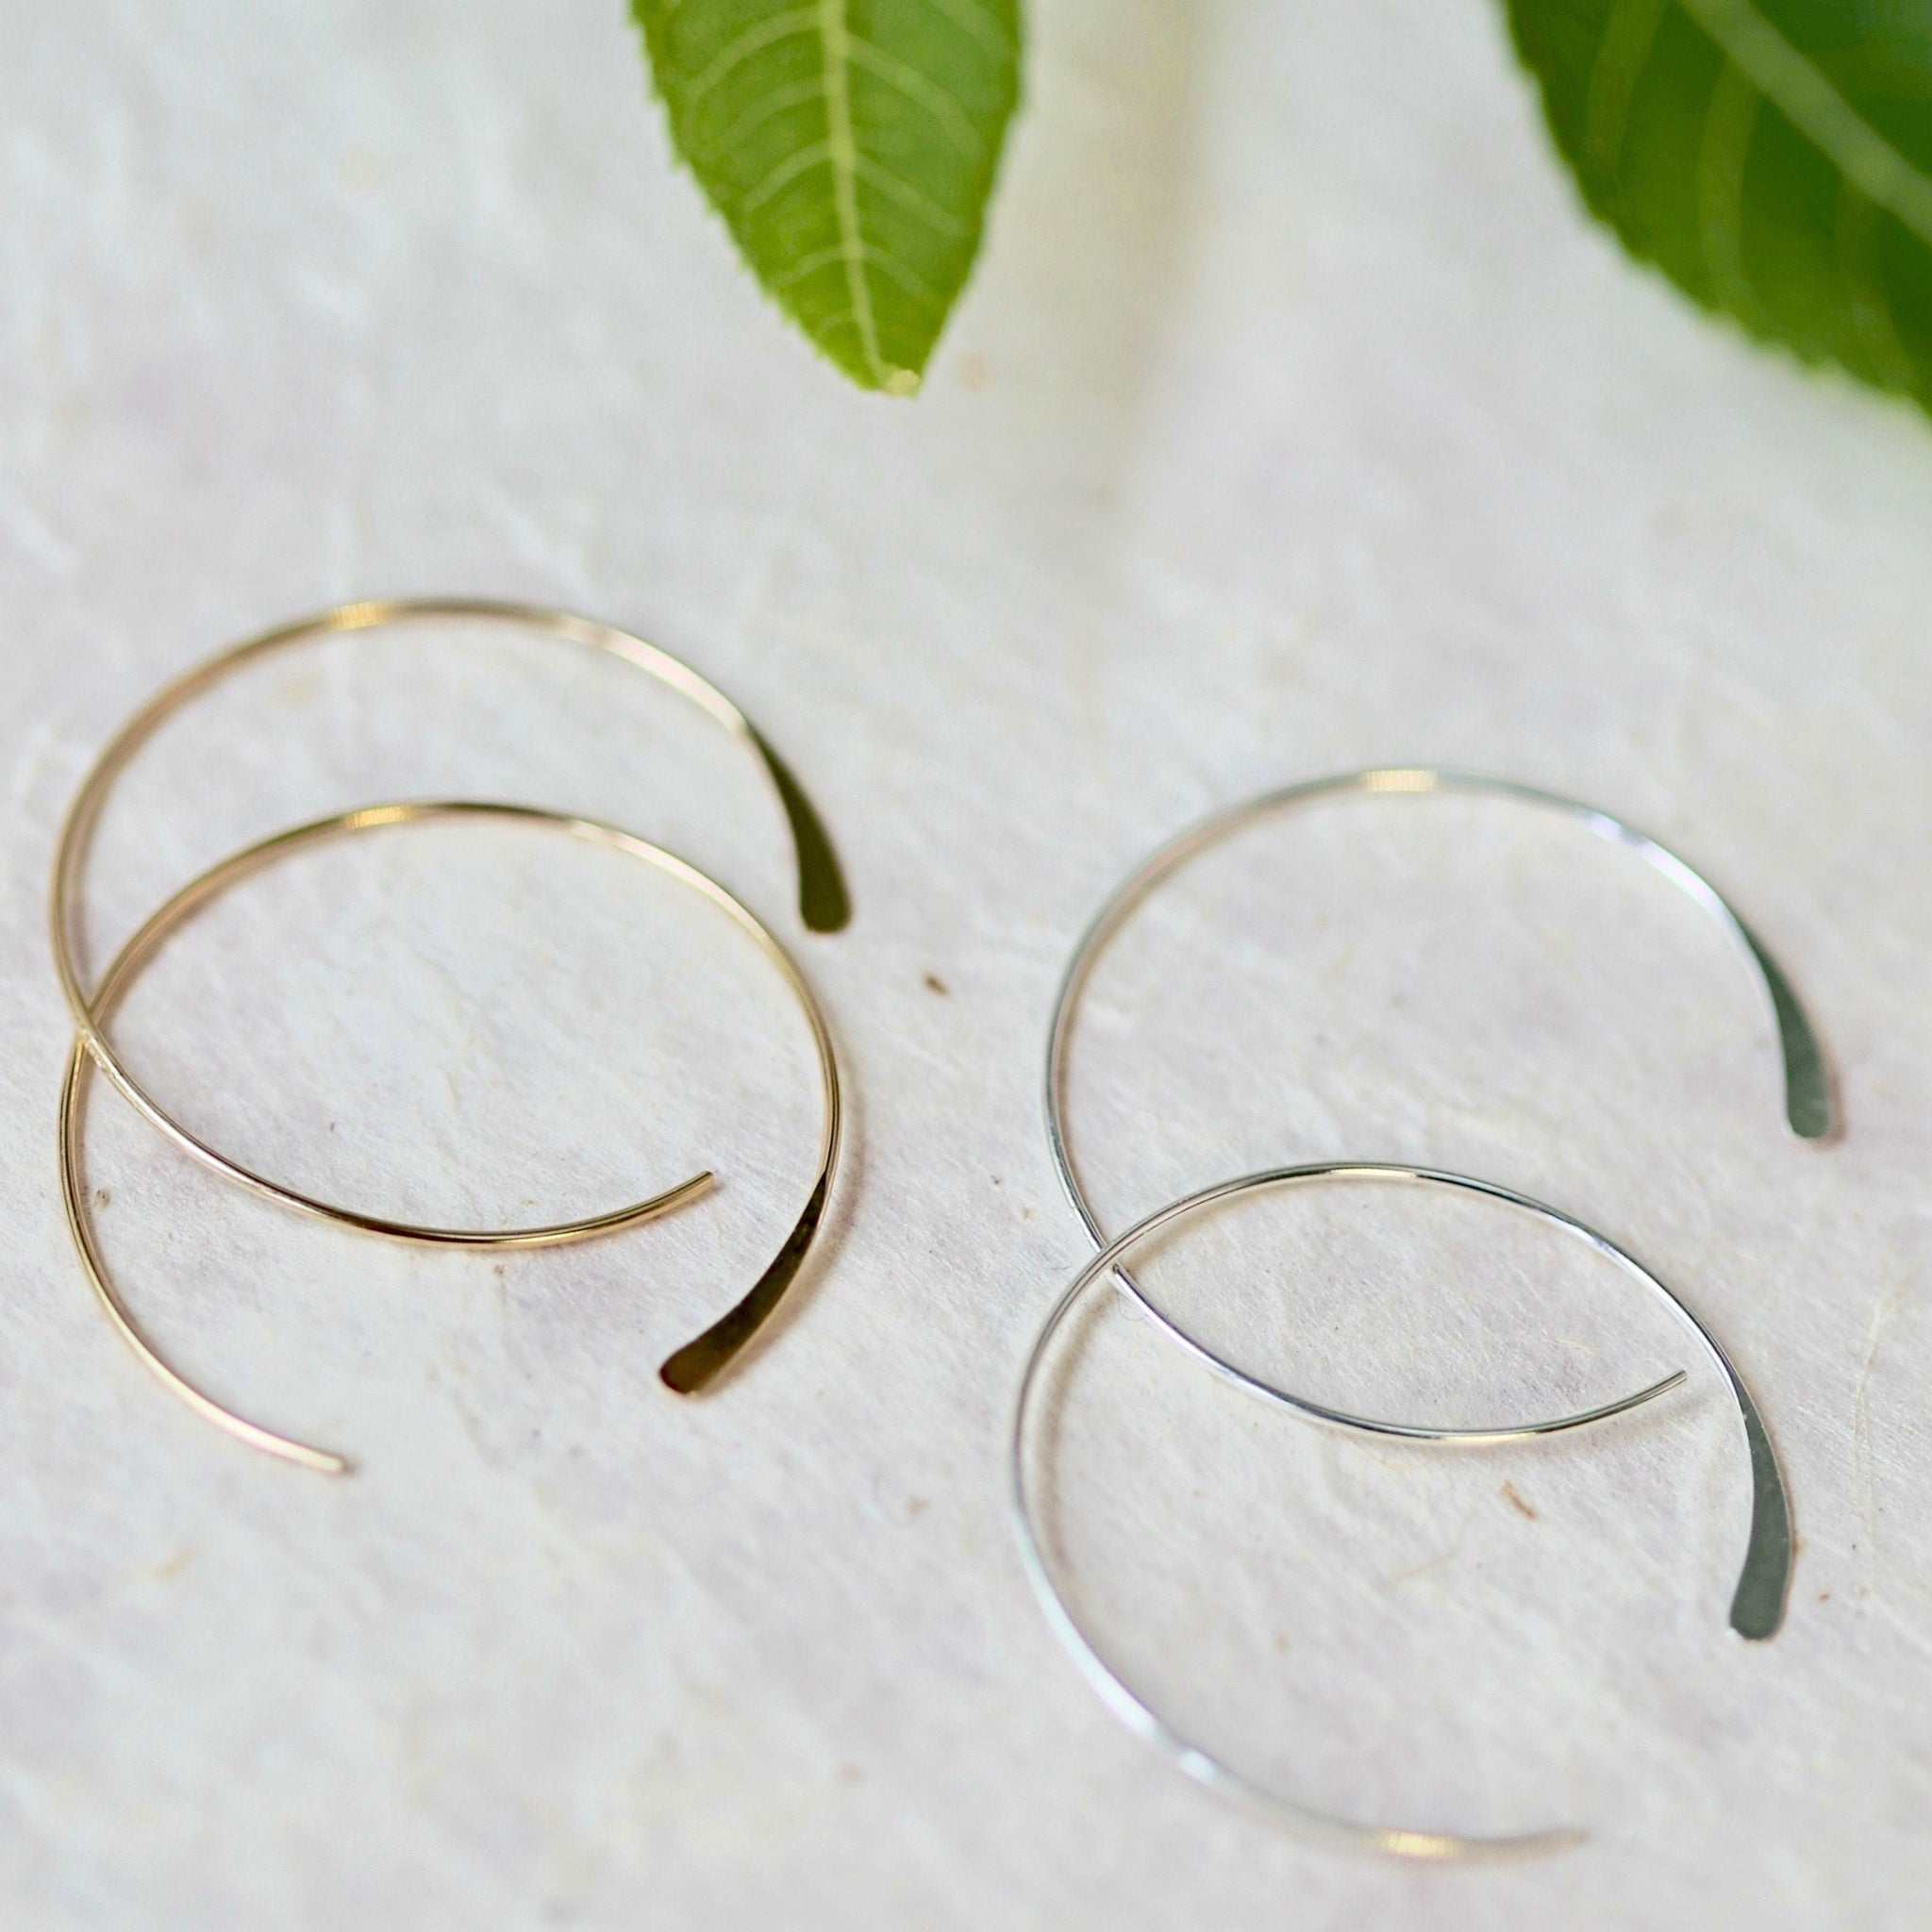 Orbit Hoop Earrings - Silver Earring / Gold Earring / Simple Hoops